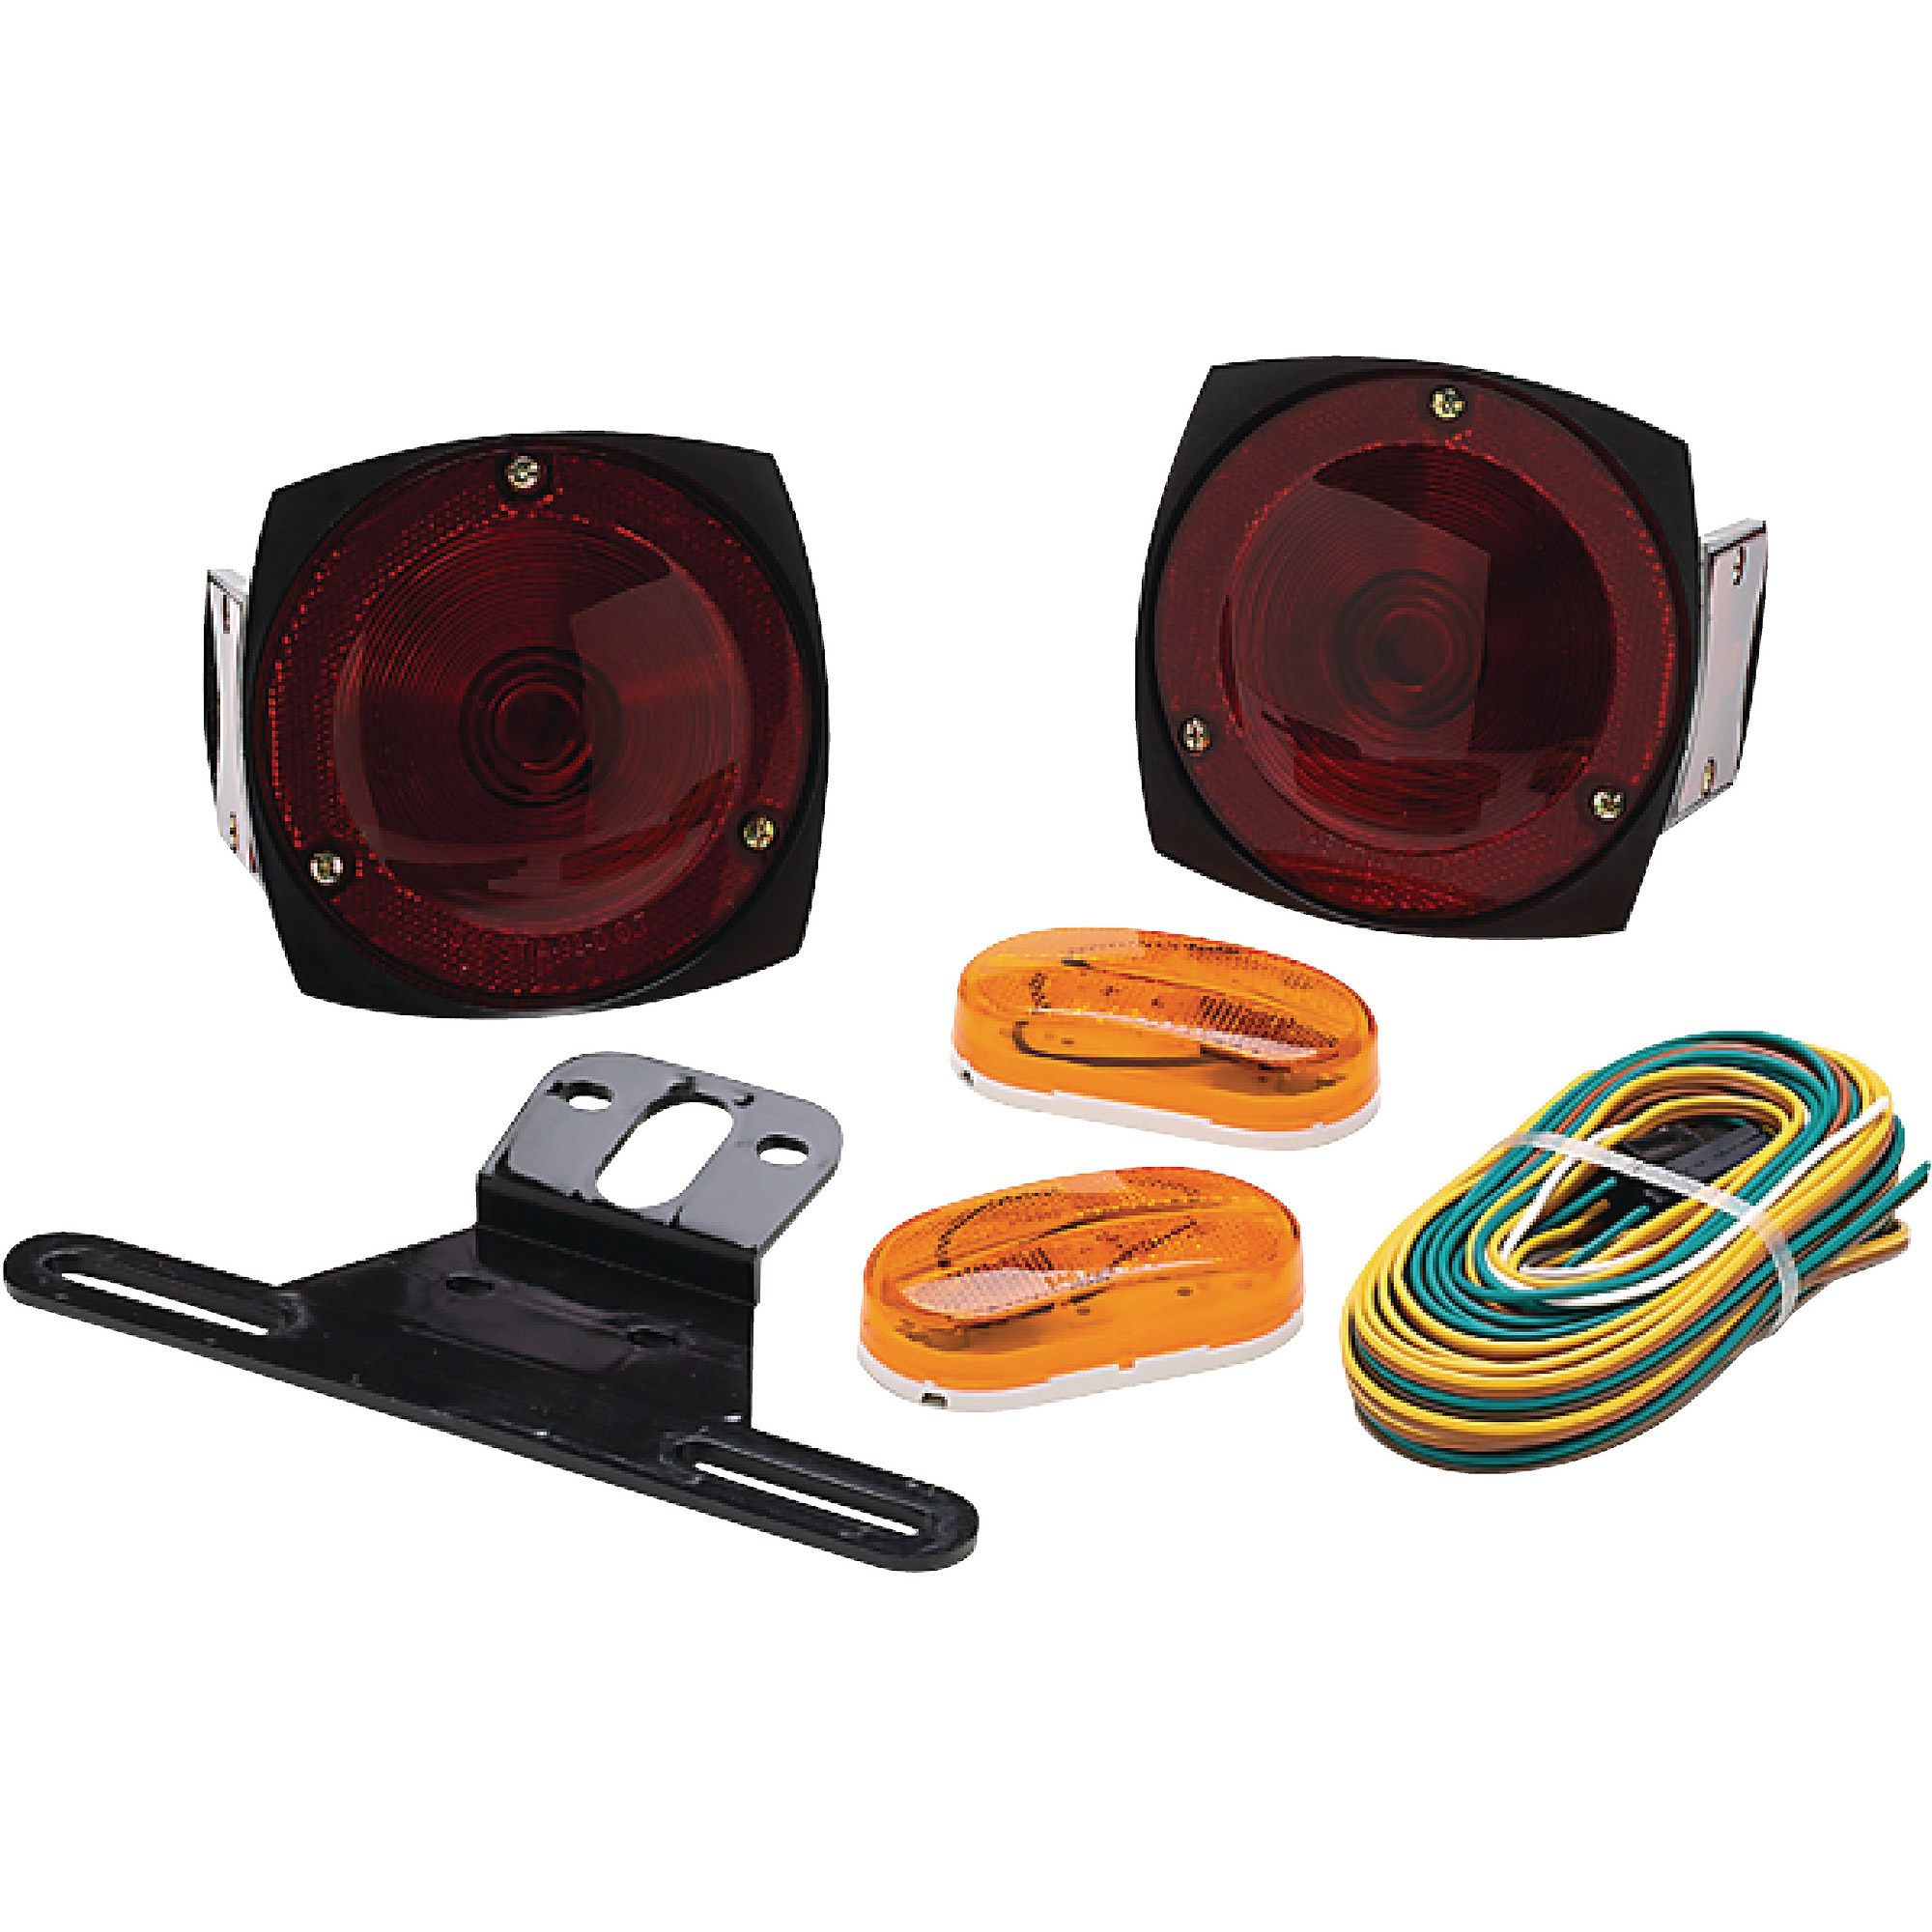 Seachoice Submersible Trailer Light Kit with Side Lights